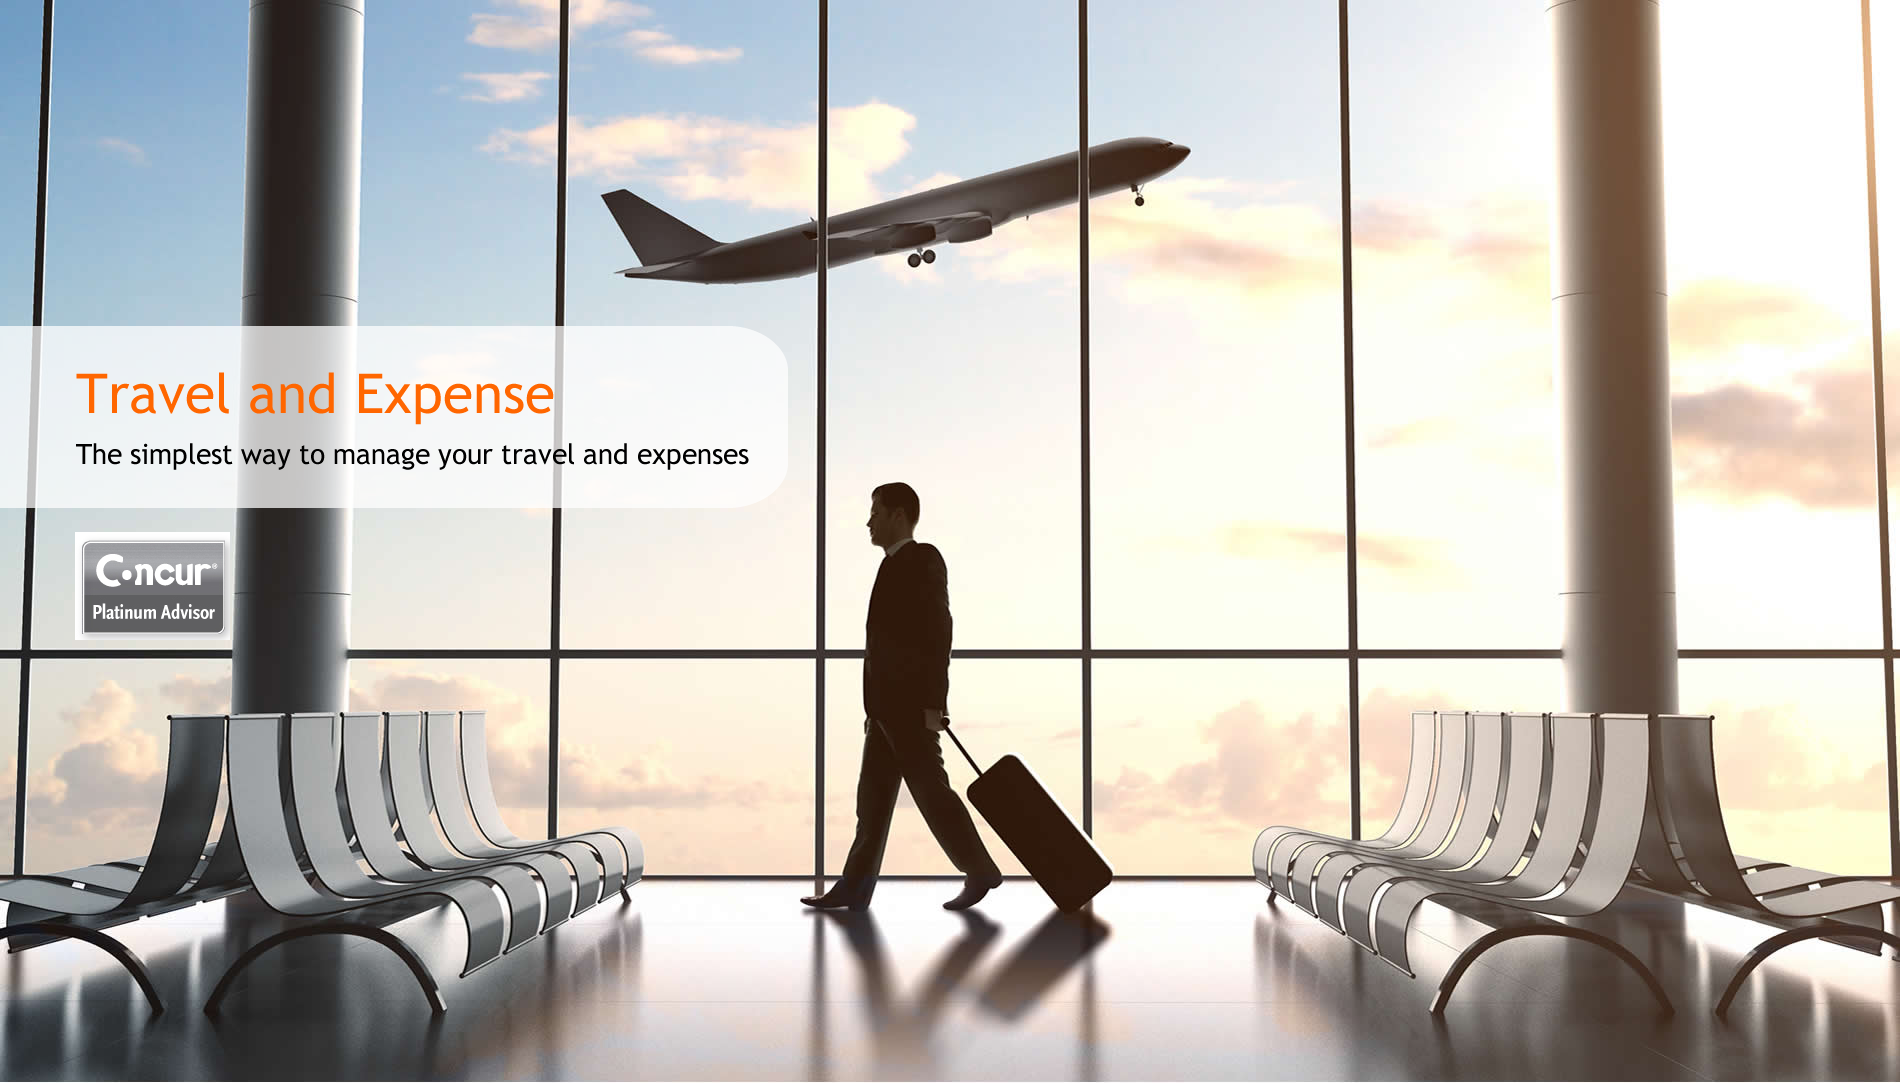 Travel and Expense